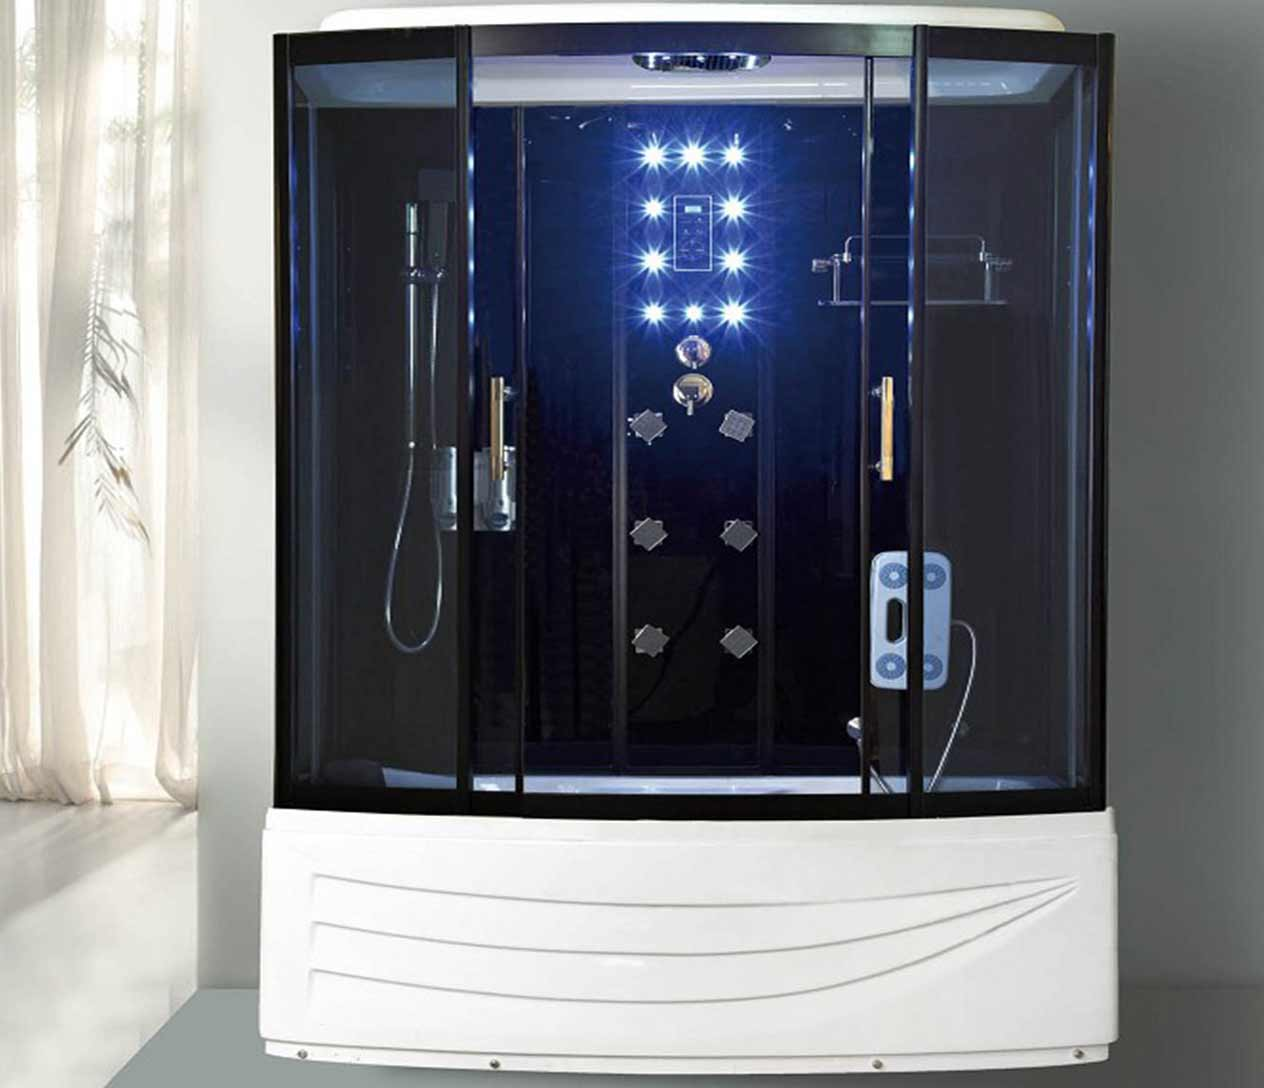 E-26 STEAM SHOWER - Luxury Spas, Inc.